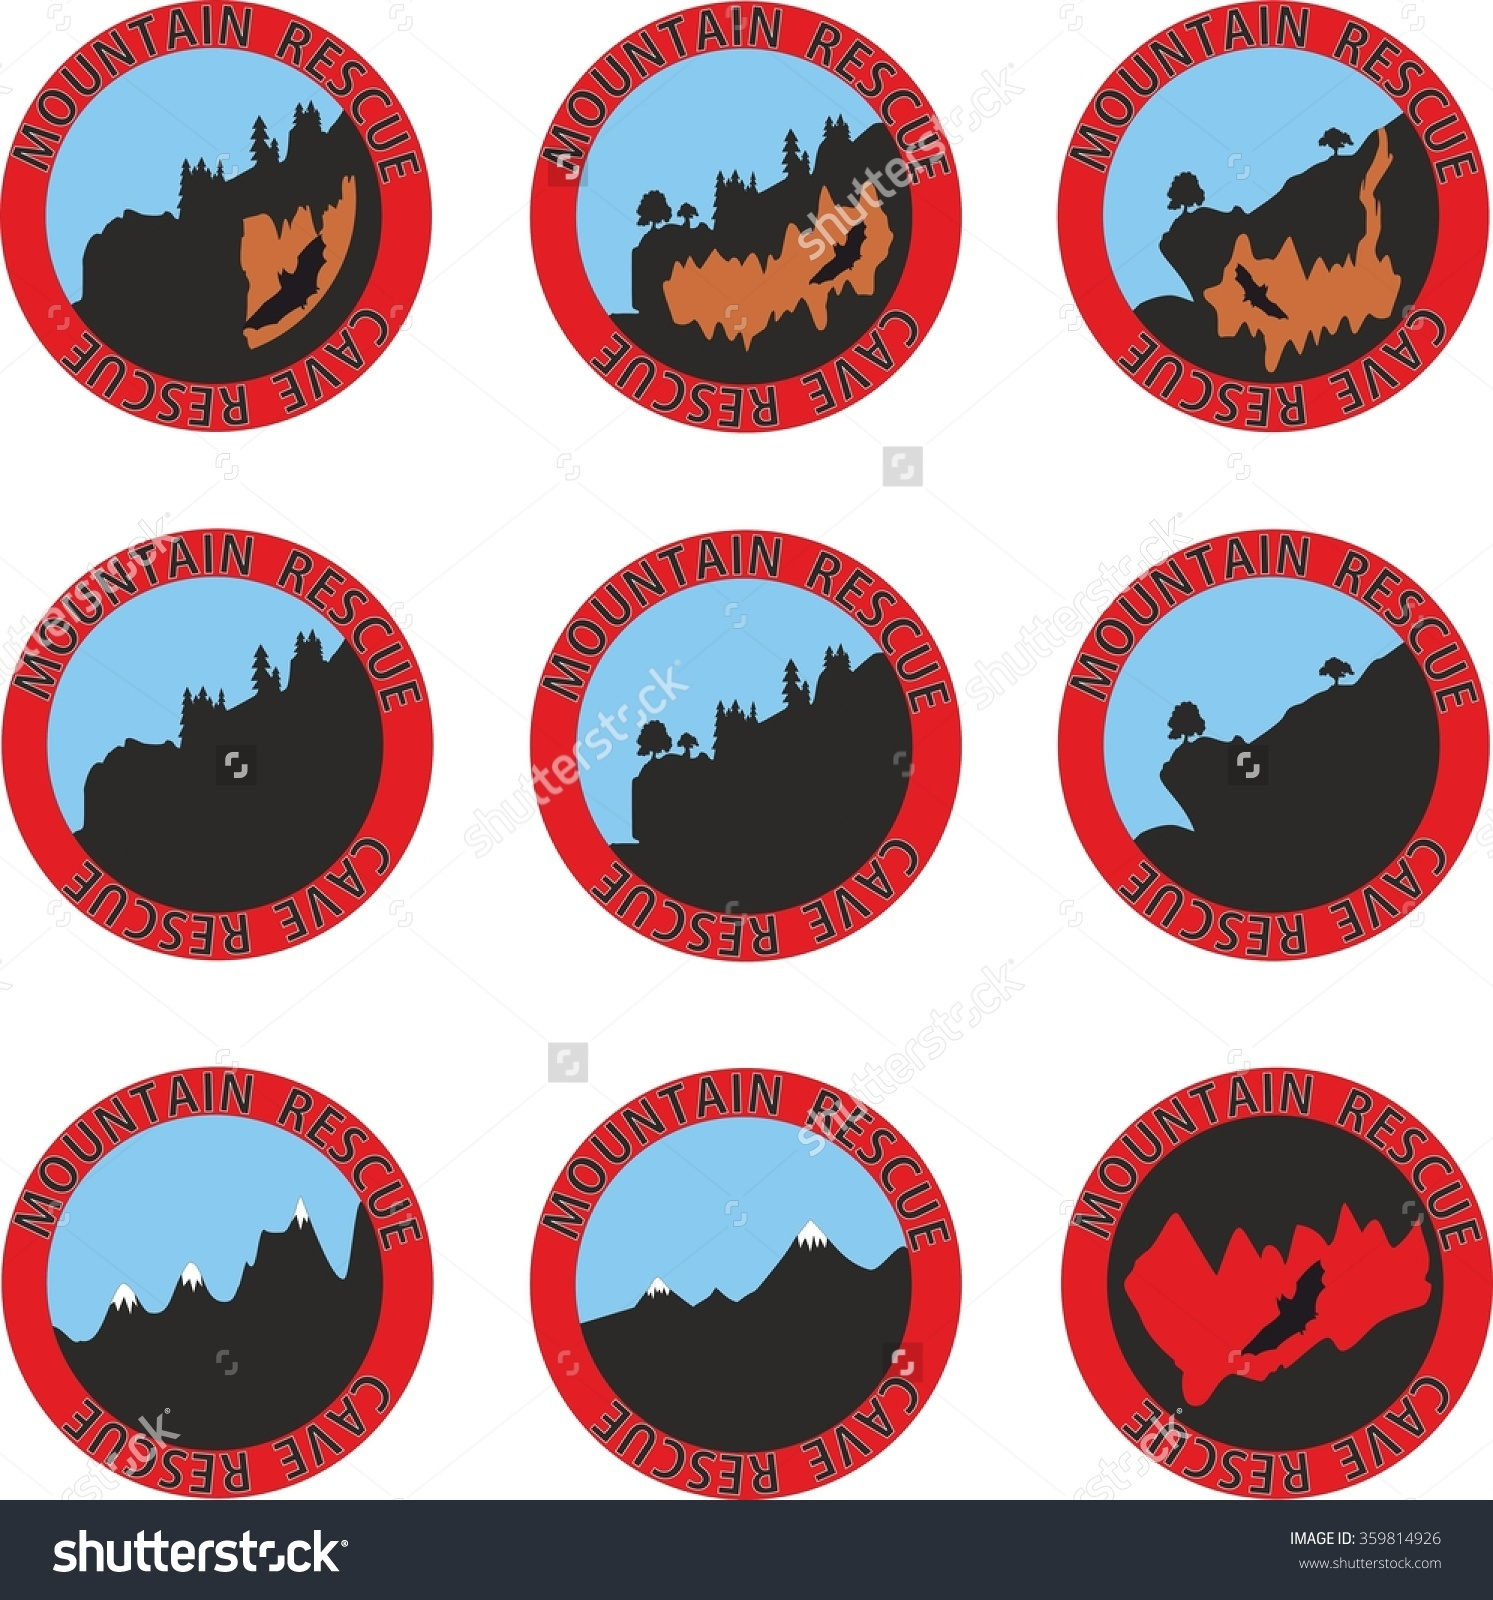 Emblem Of A Mountain Rescue Service Stock Vector Illustration.